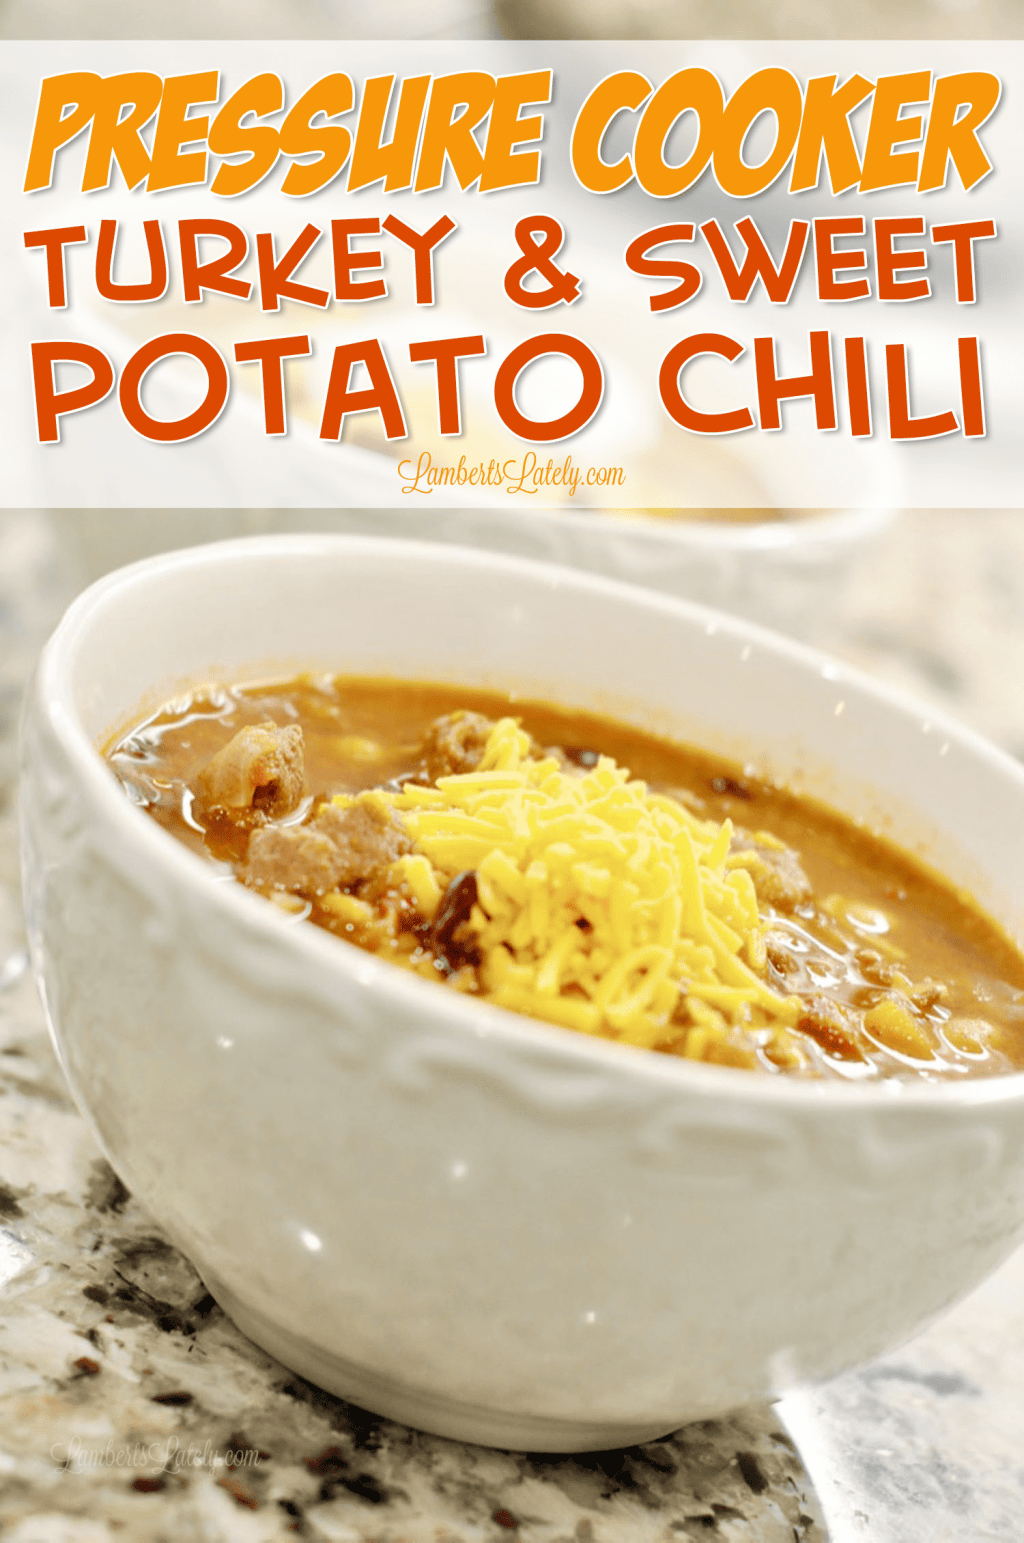 This Pressure Cooking Turkey & Sweet Potato Chili is a healthy alternative to the traditional recipe - loaded with rich tomato flavor and can be prepped in the Instant Pot!